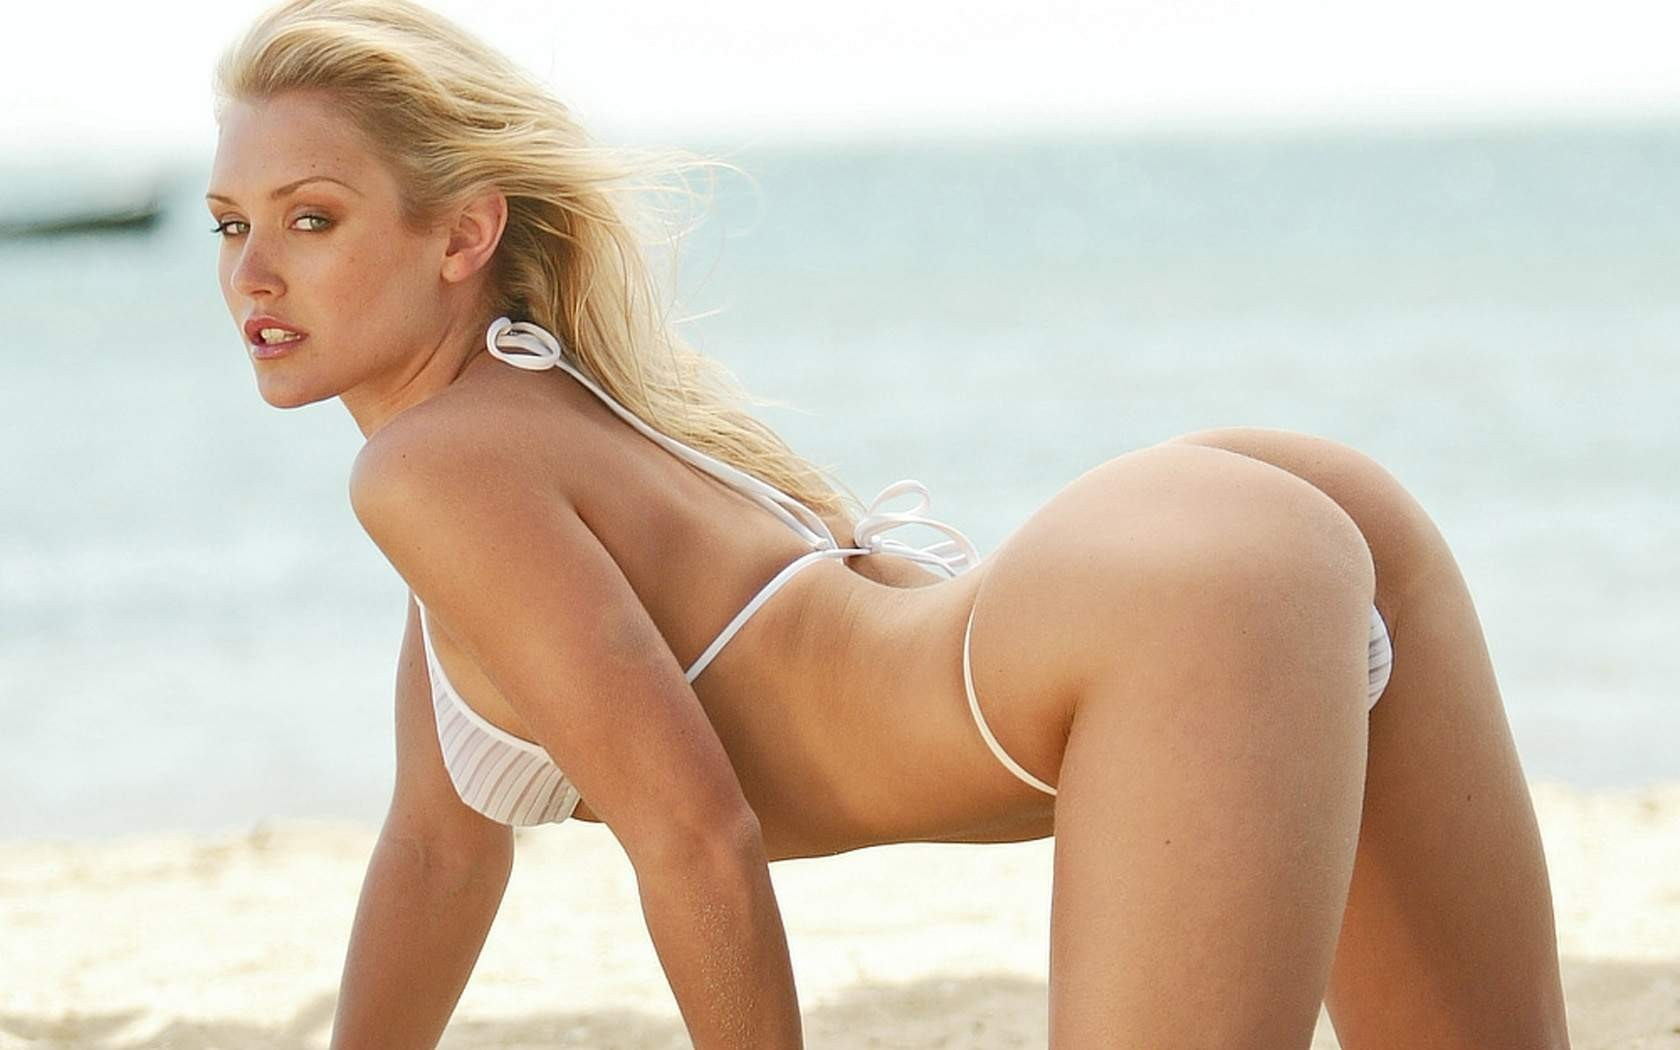 blondes woman bikini ass HD Wallpaper